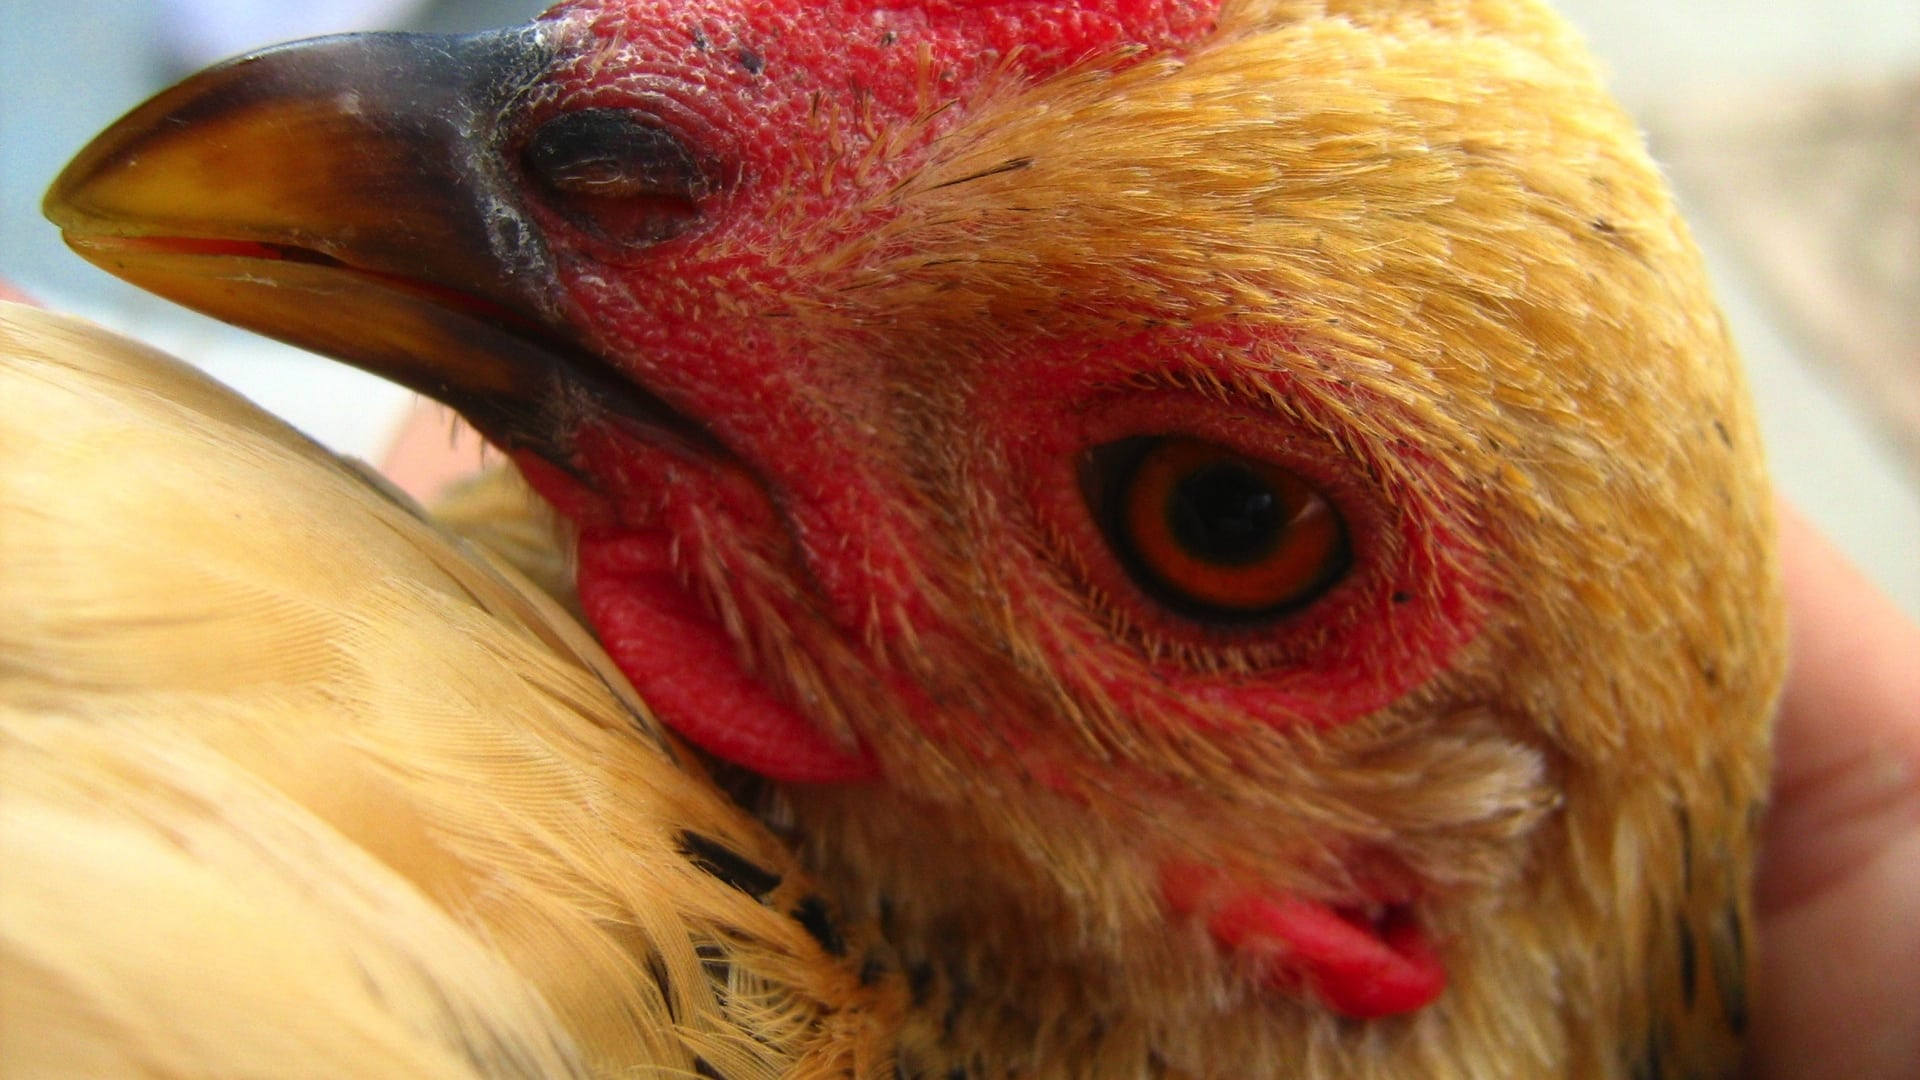 Illegal Drugs in Chicken Feathers